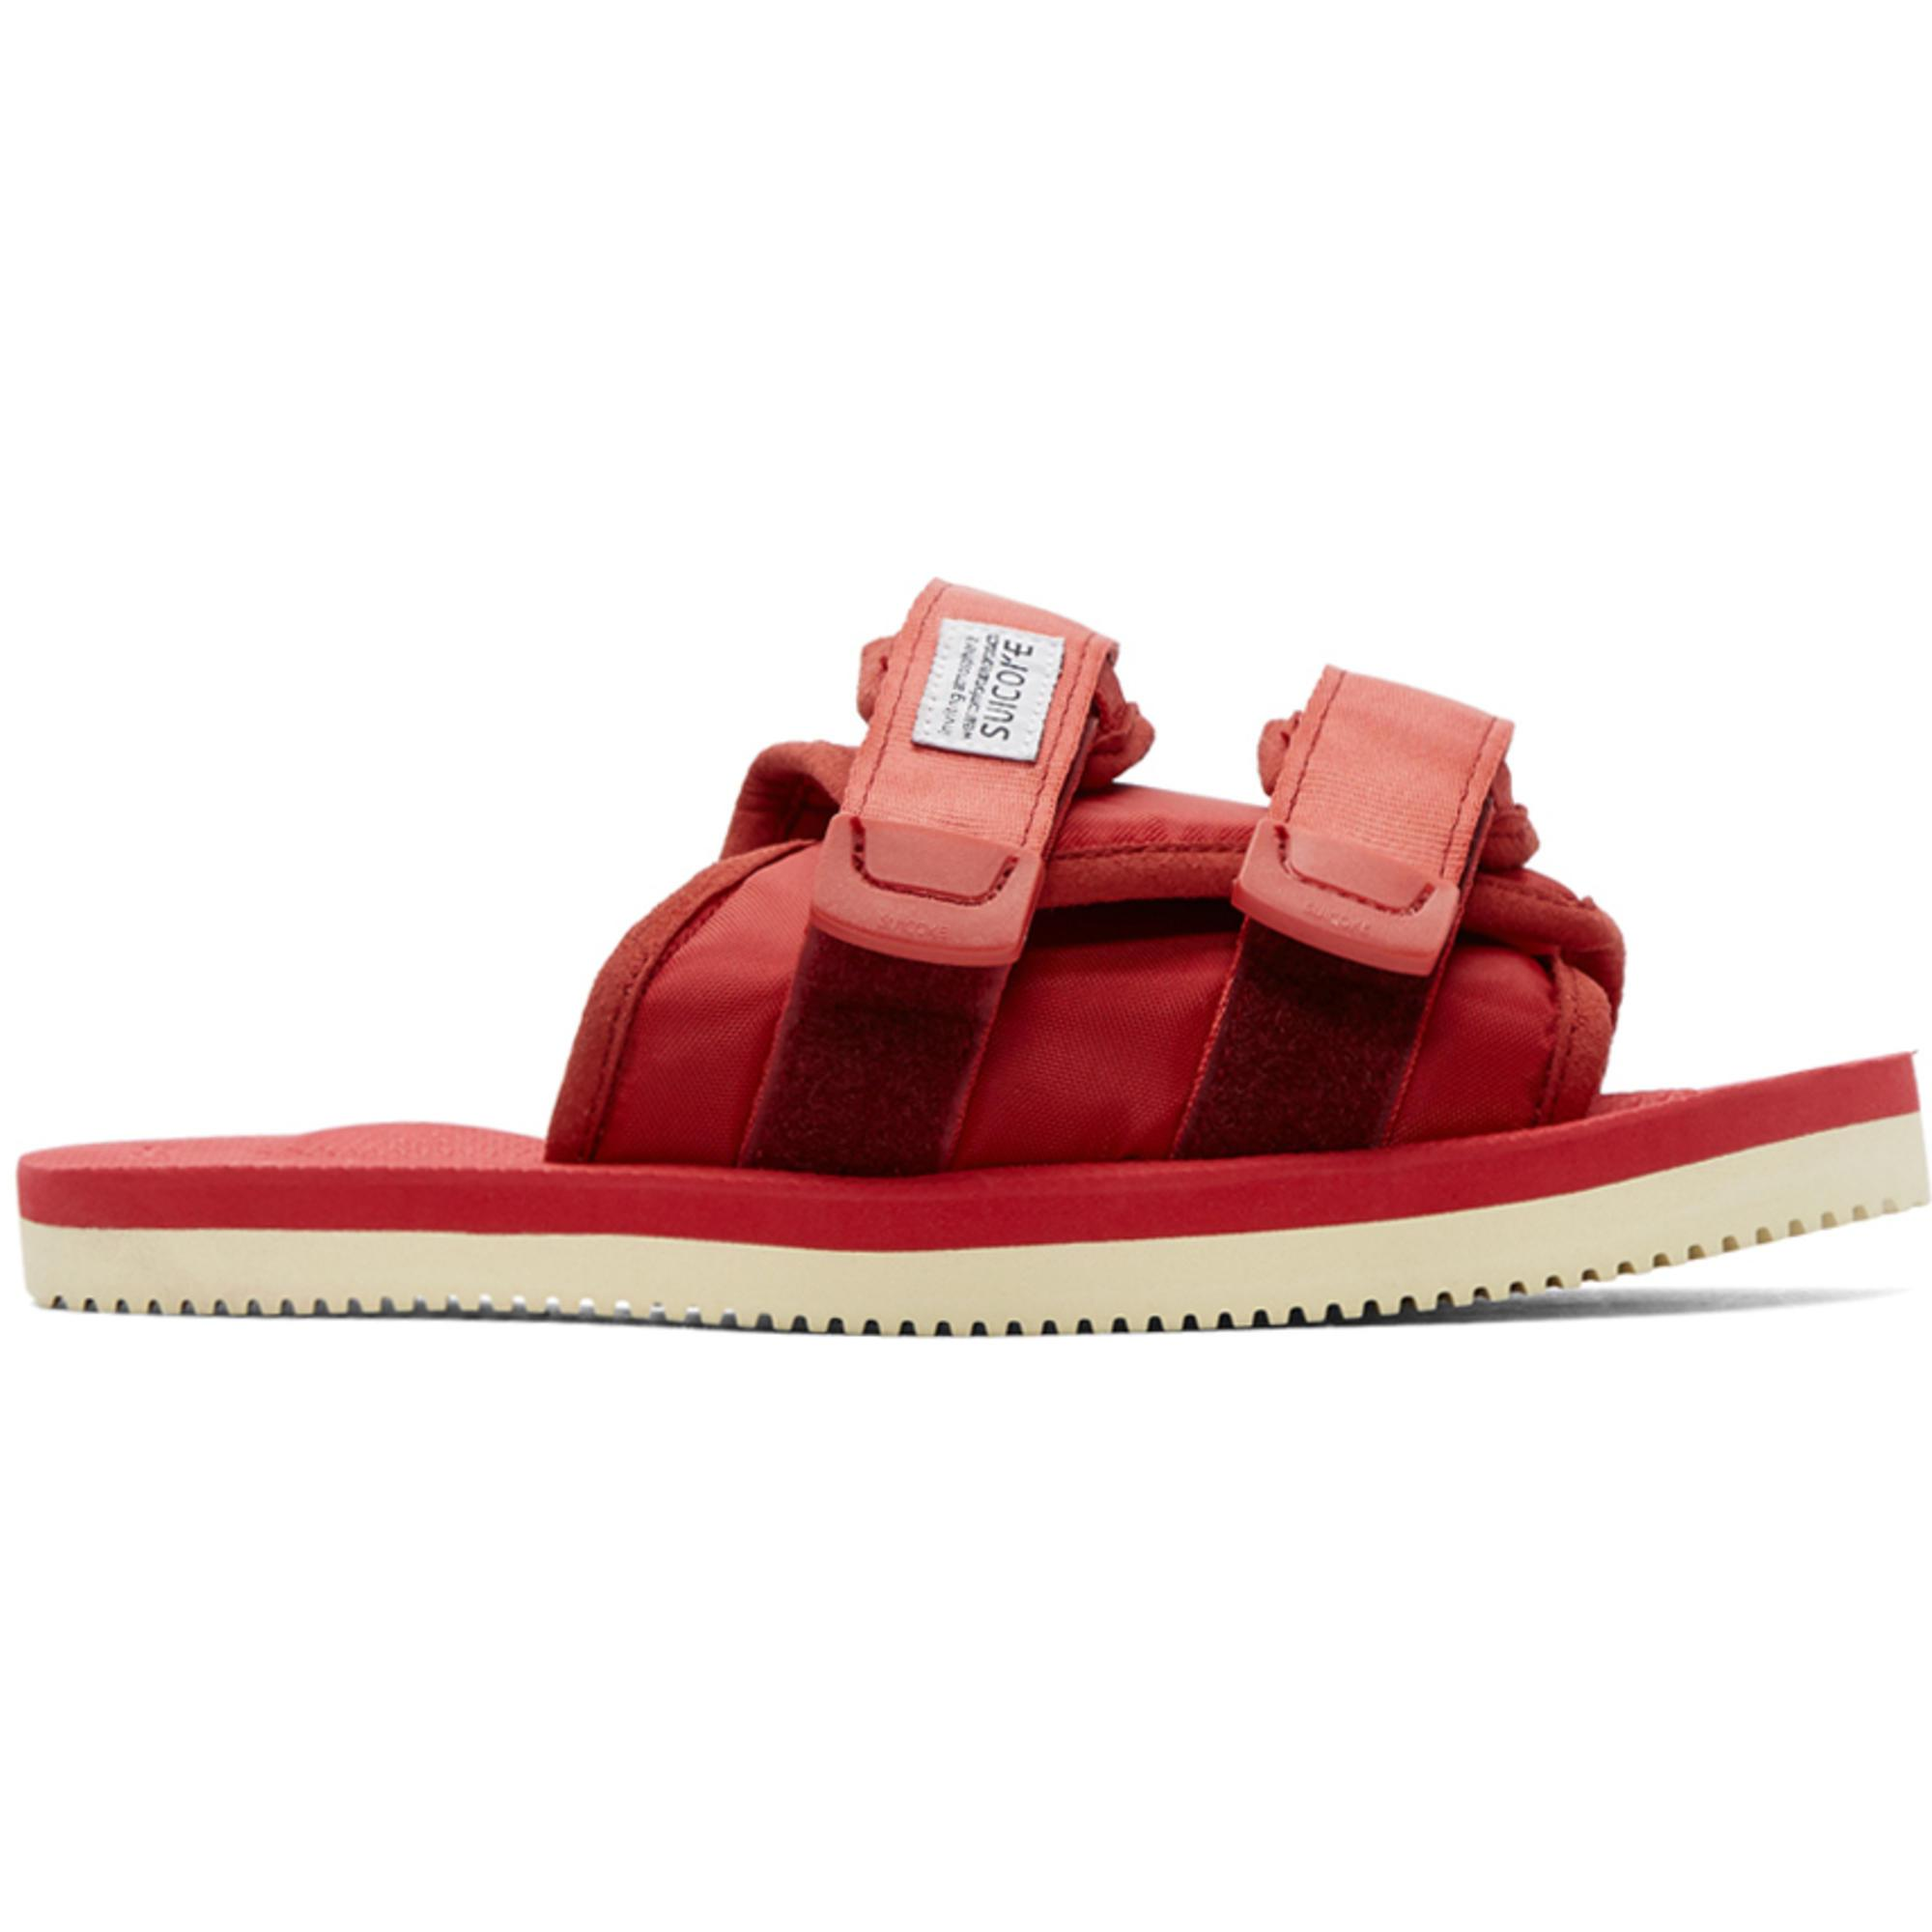 f3b57f19b6f Lyst - Suicoke Ssense Exclusive Red Moto-cab Sandals in Red